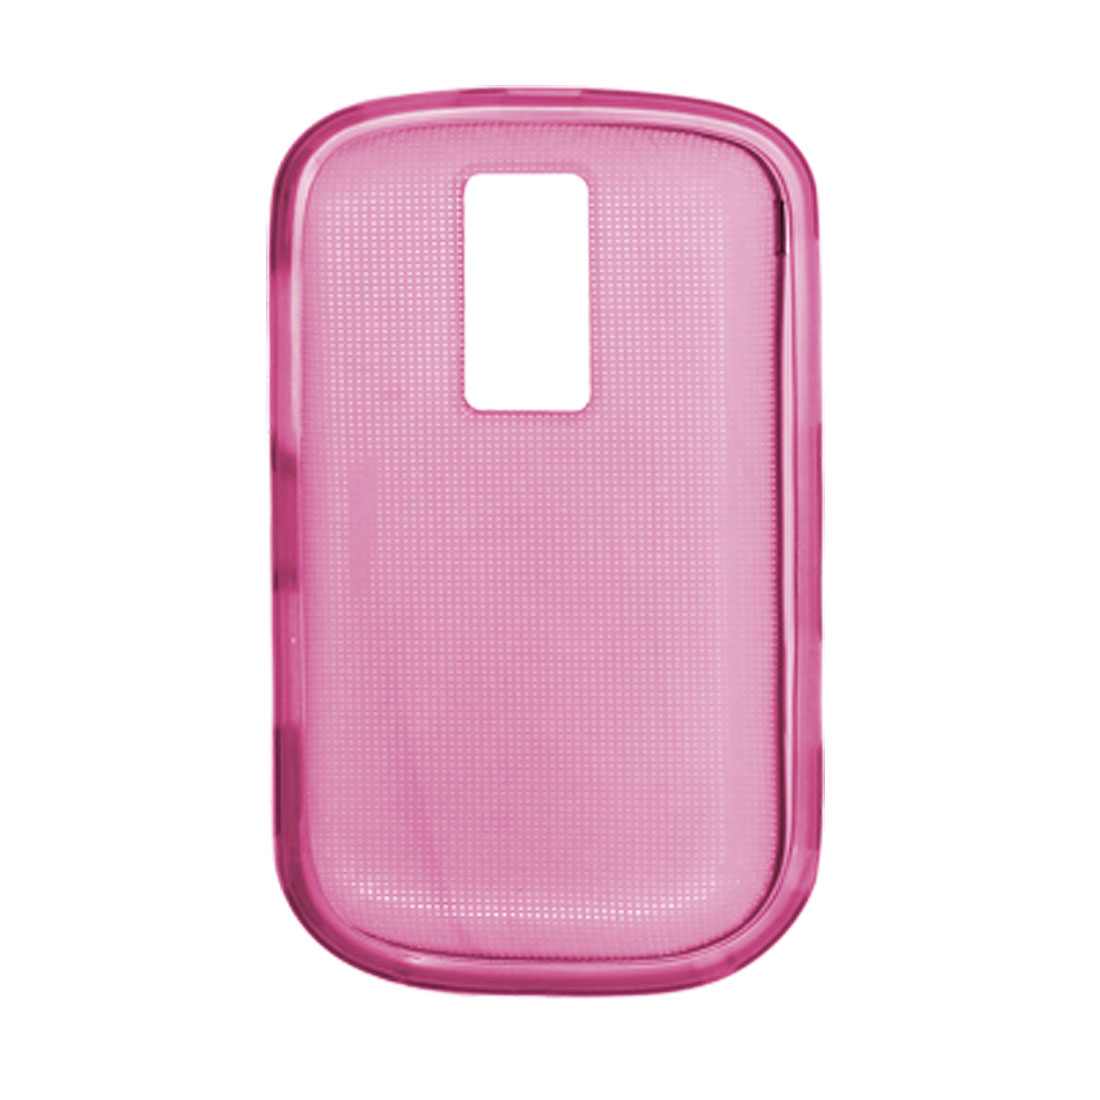 Protective Cover Pink Shield Guard Soft Plastic Case for Blackberry 9000